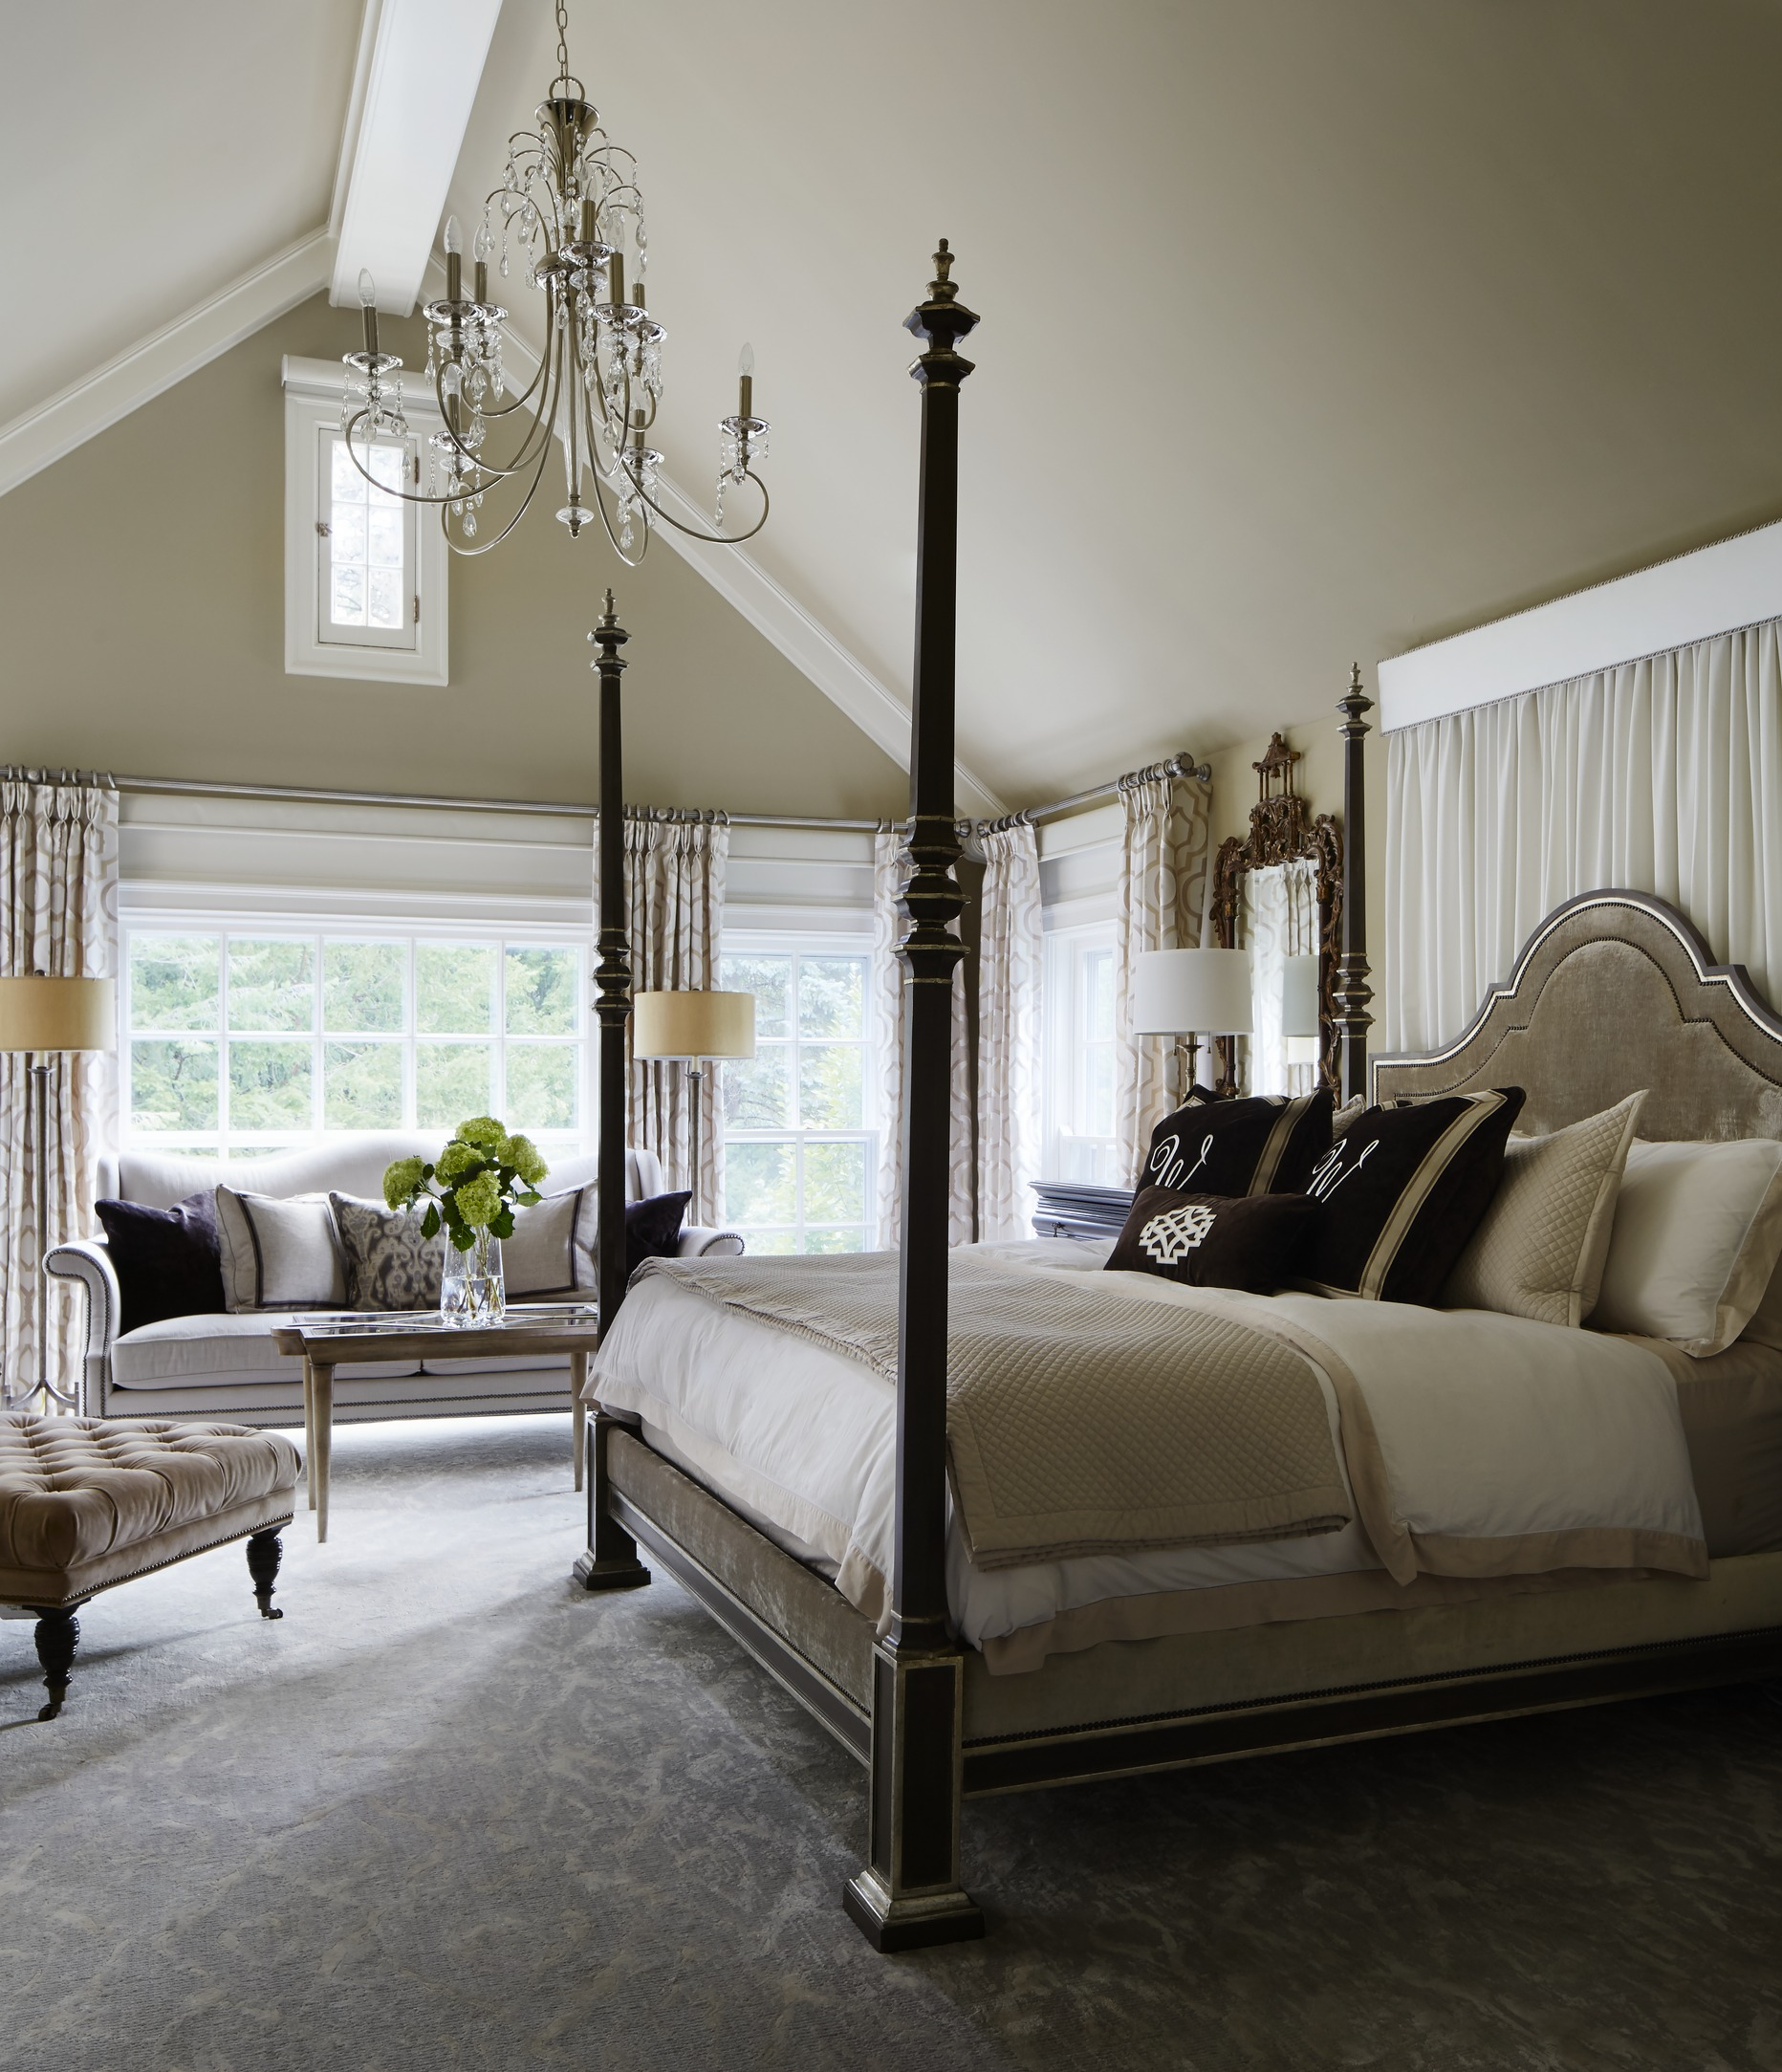 Warm Gray Paint Colors For Bedroom Nine Fabulous Benjamin Color Ideas Bedrooms Painting Sherwin Williams Behr Light Living Room Kitchen Cool Moore Apppie Org